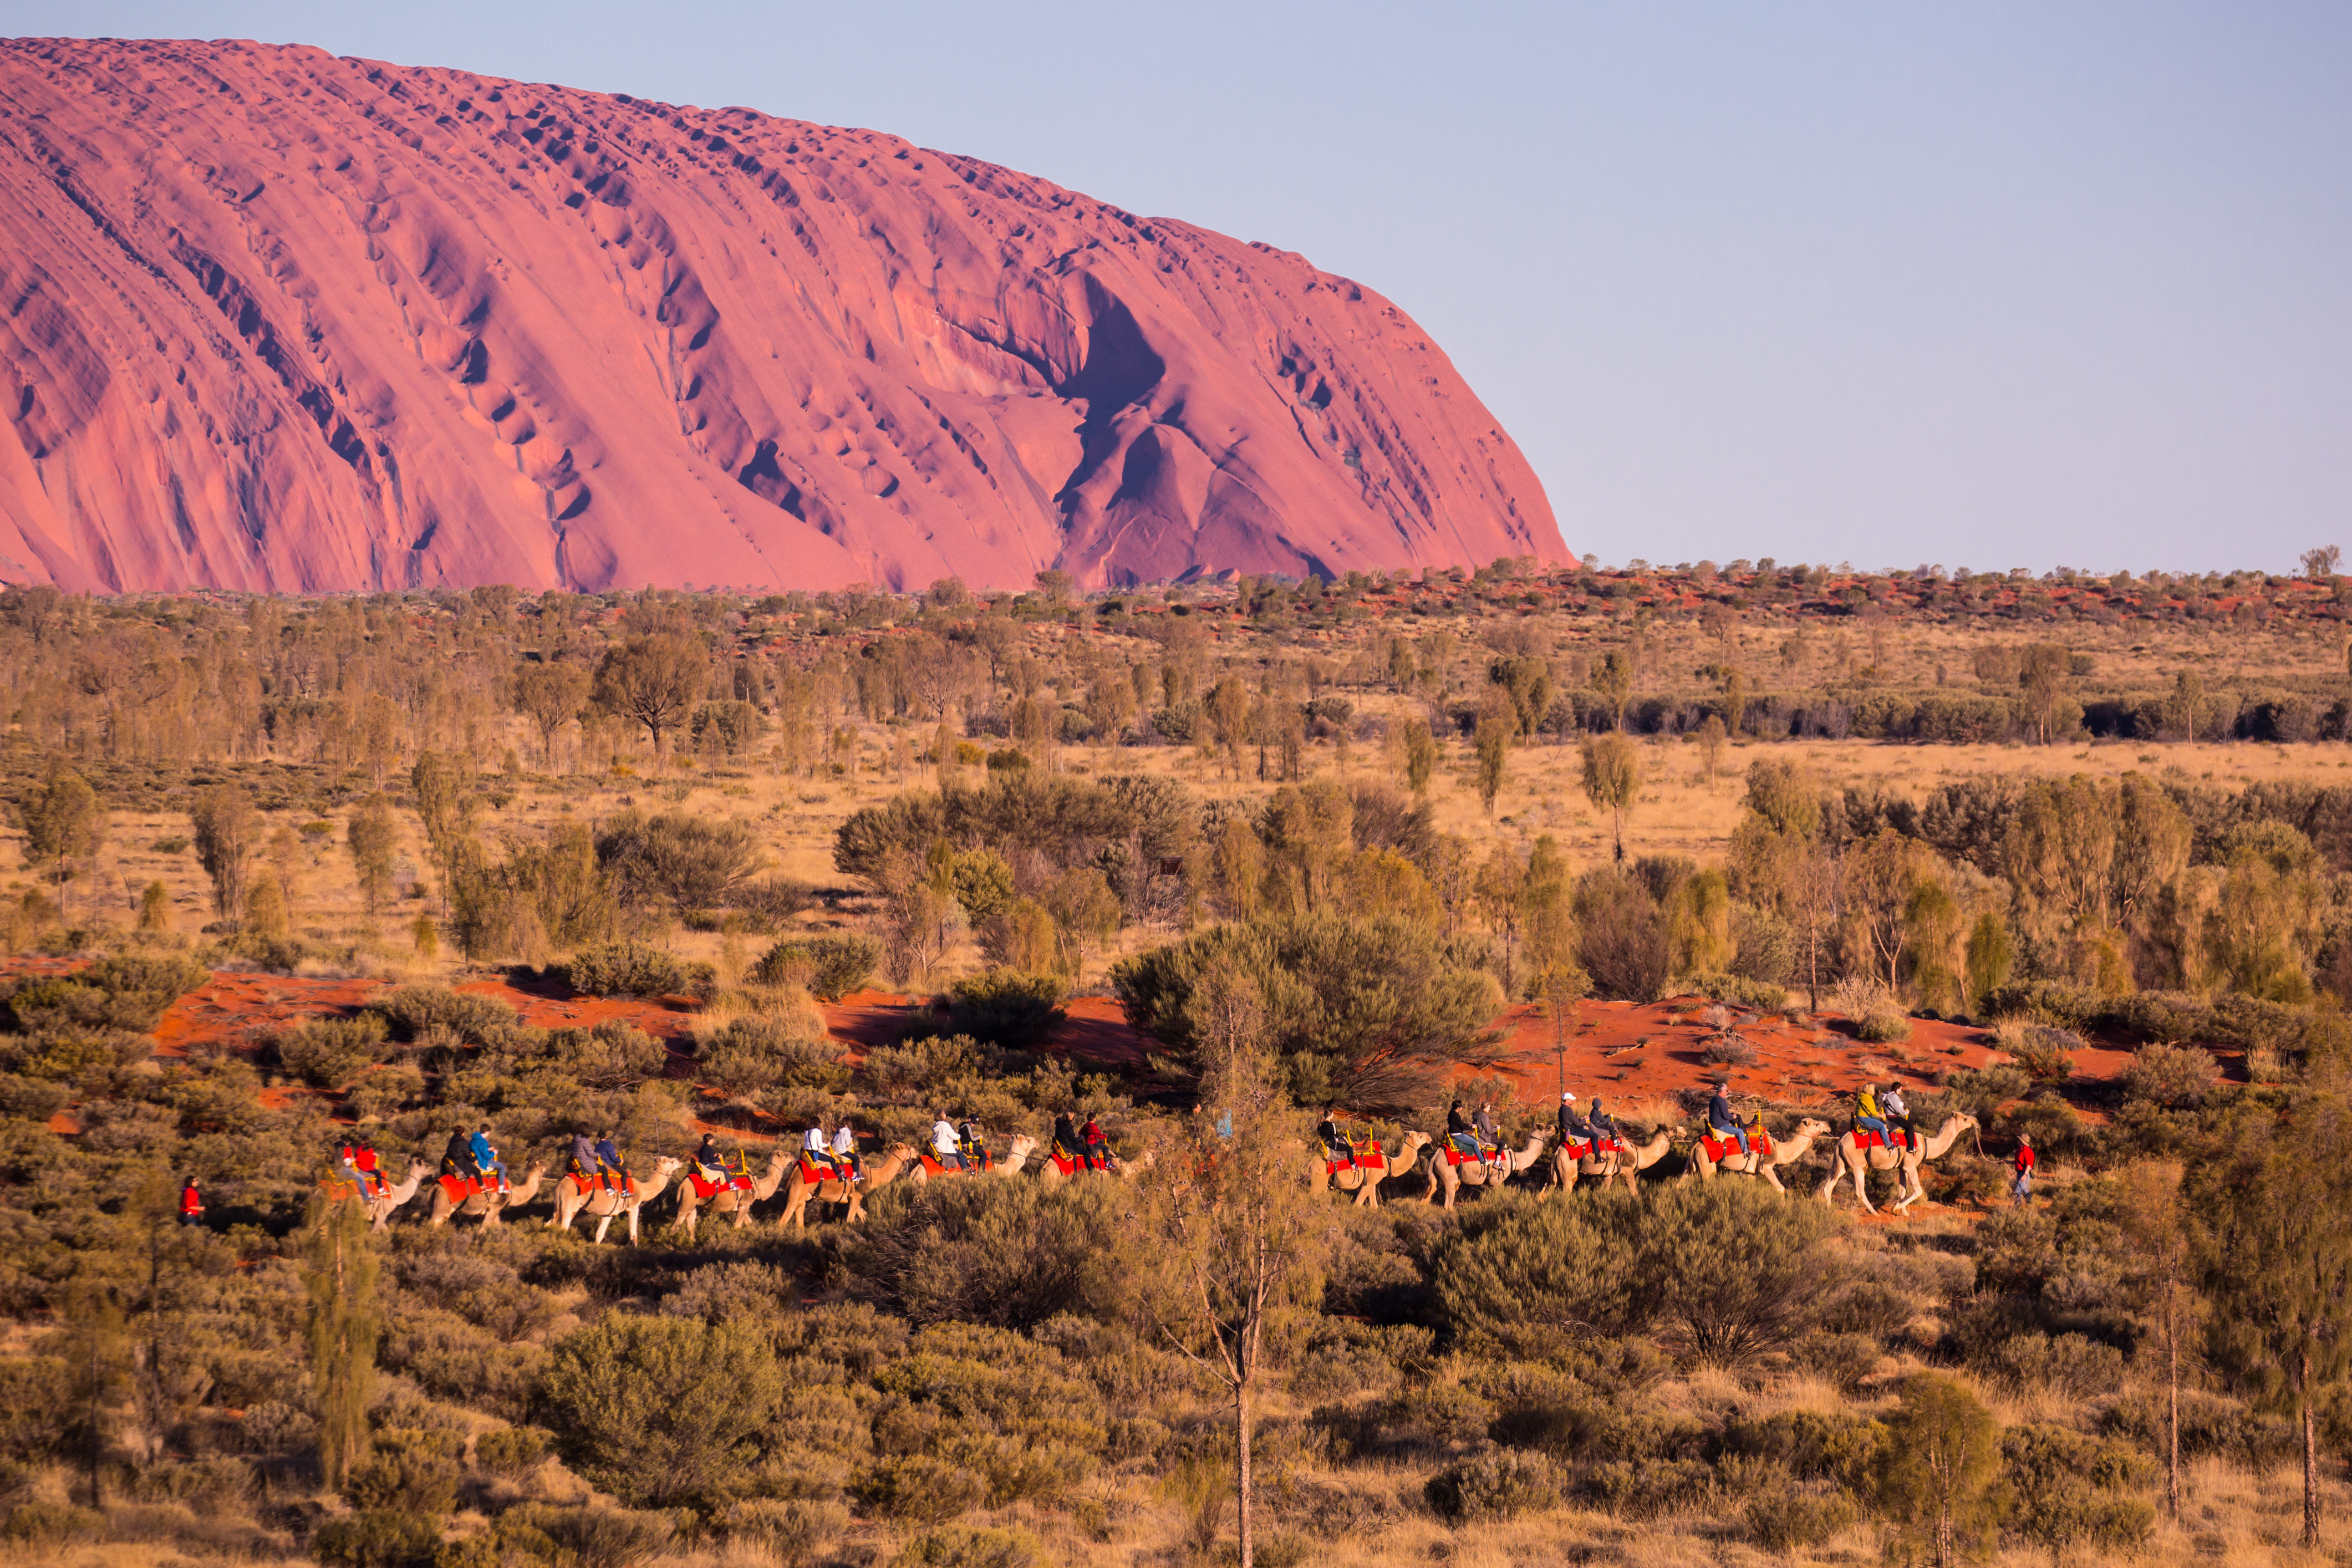 Uluru at Sunset with Camels